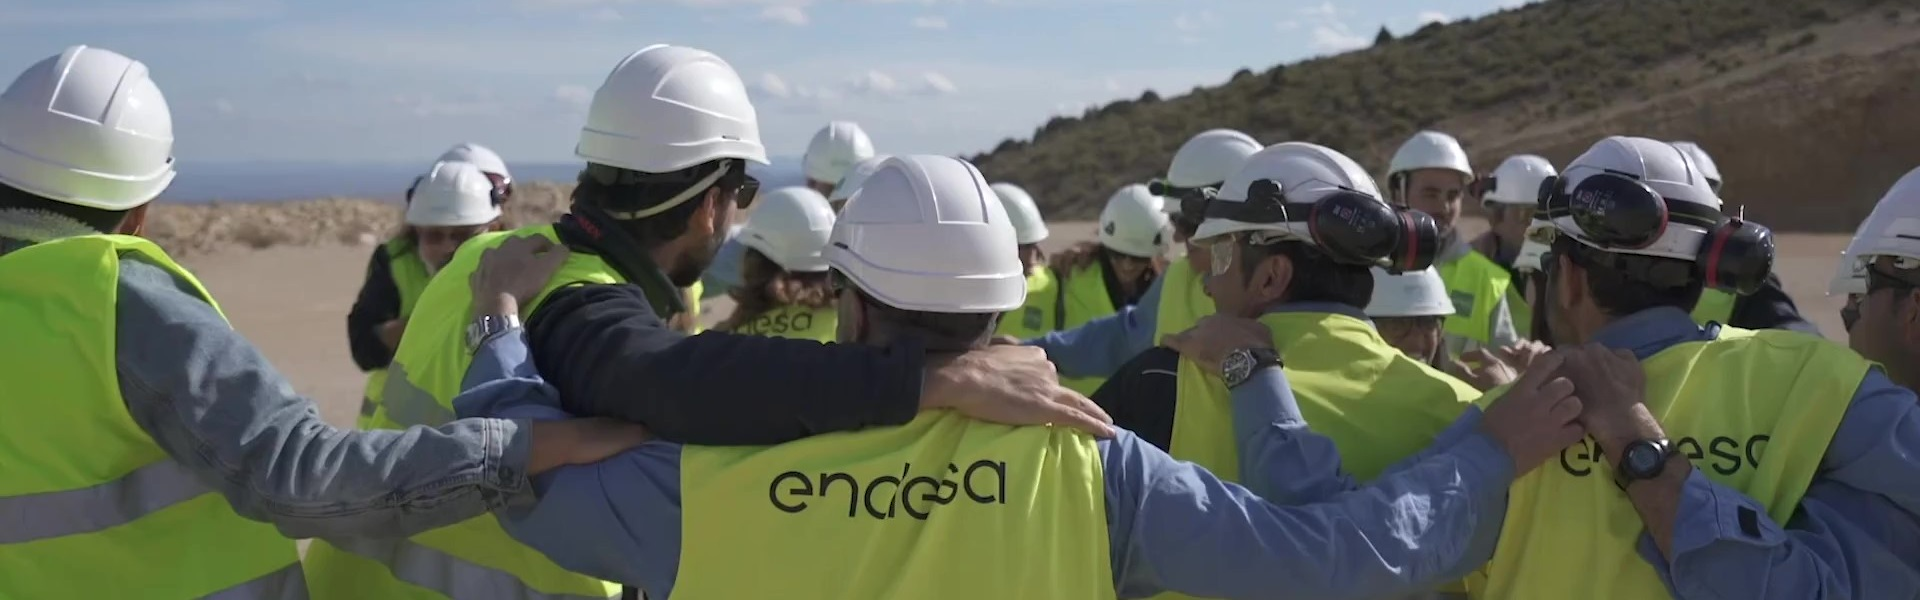 Endesa team that has worked on the construction of renewables